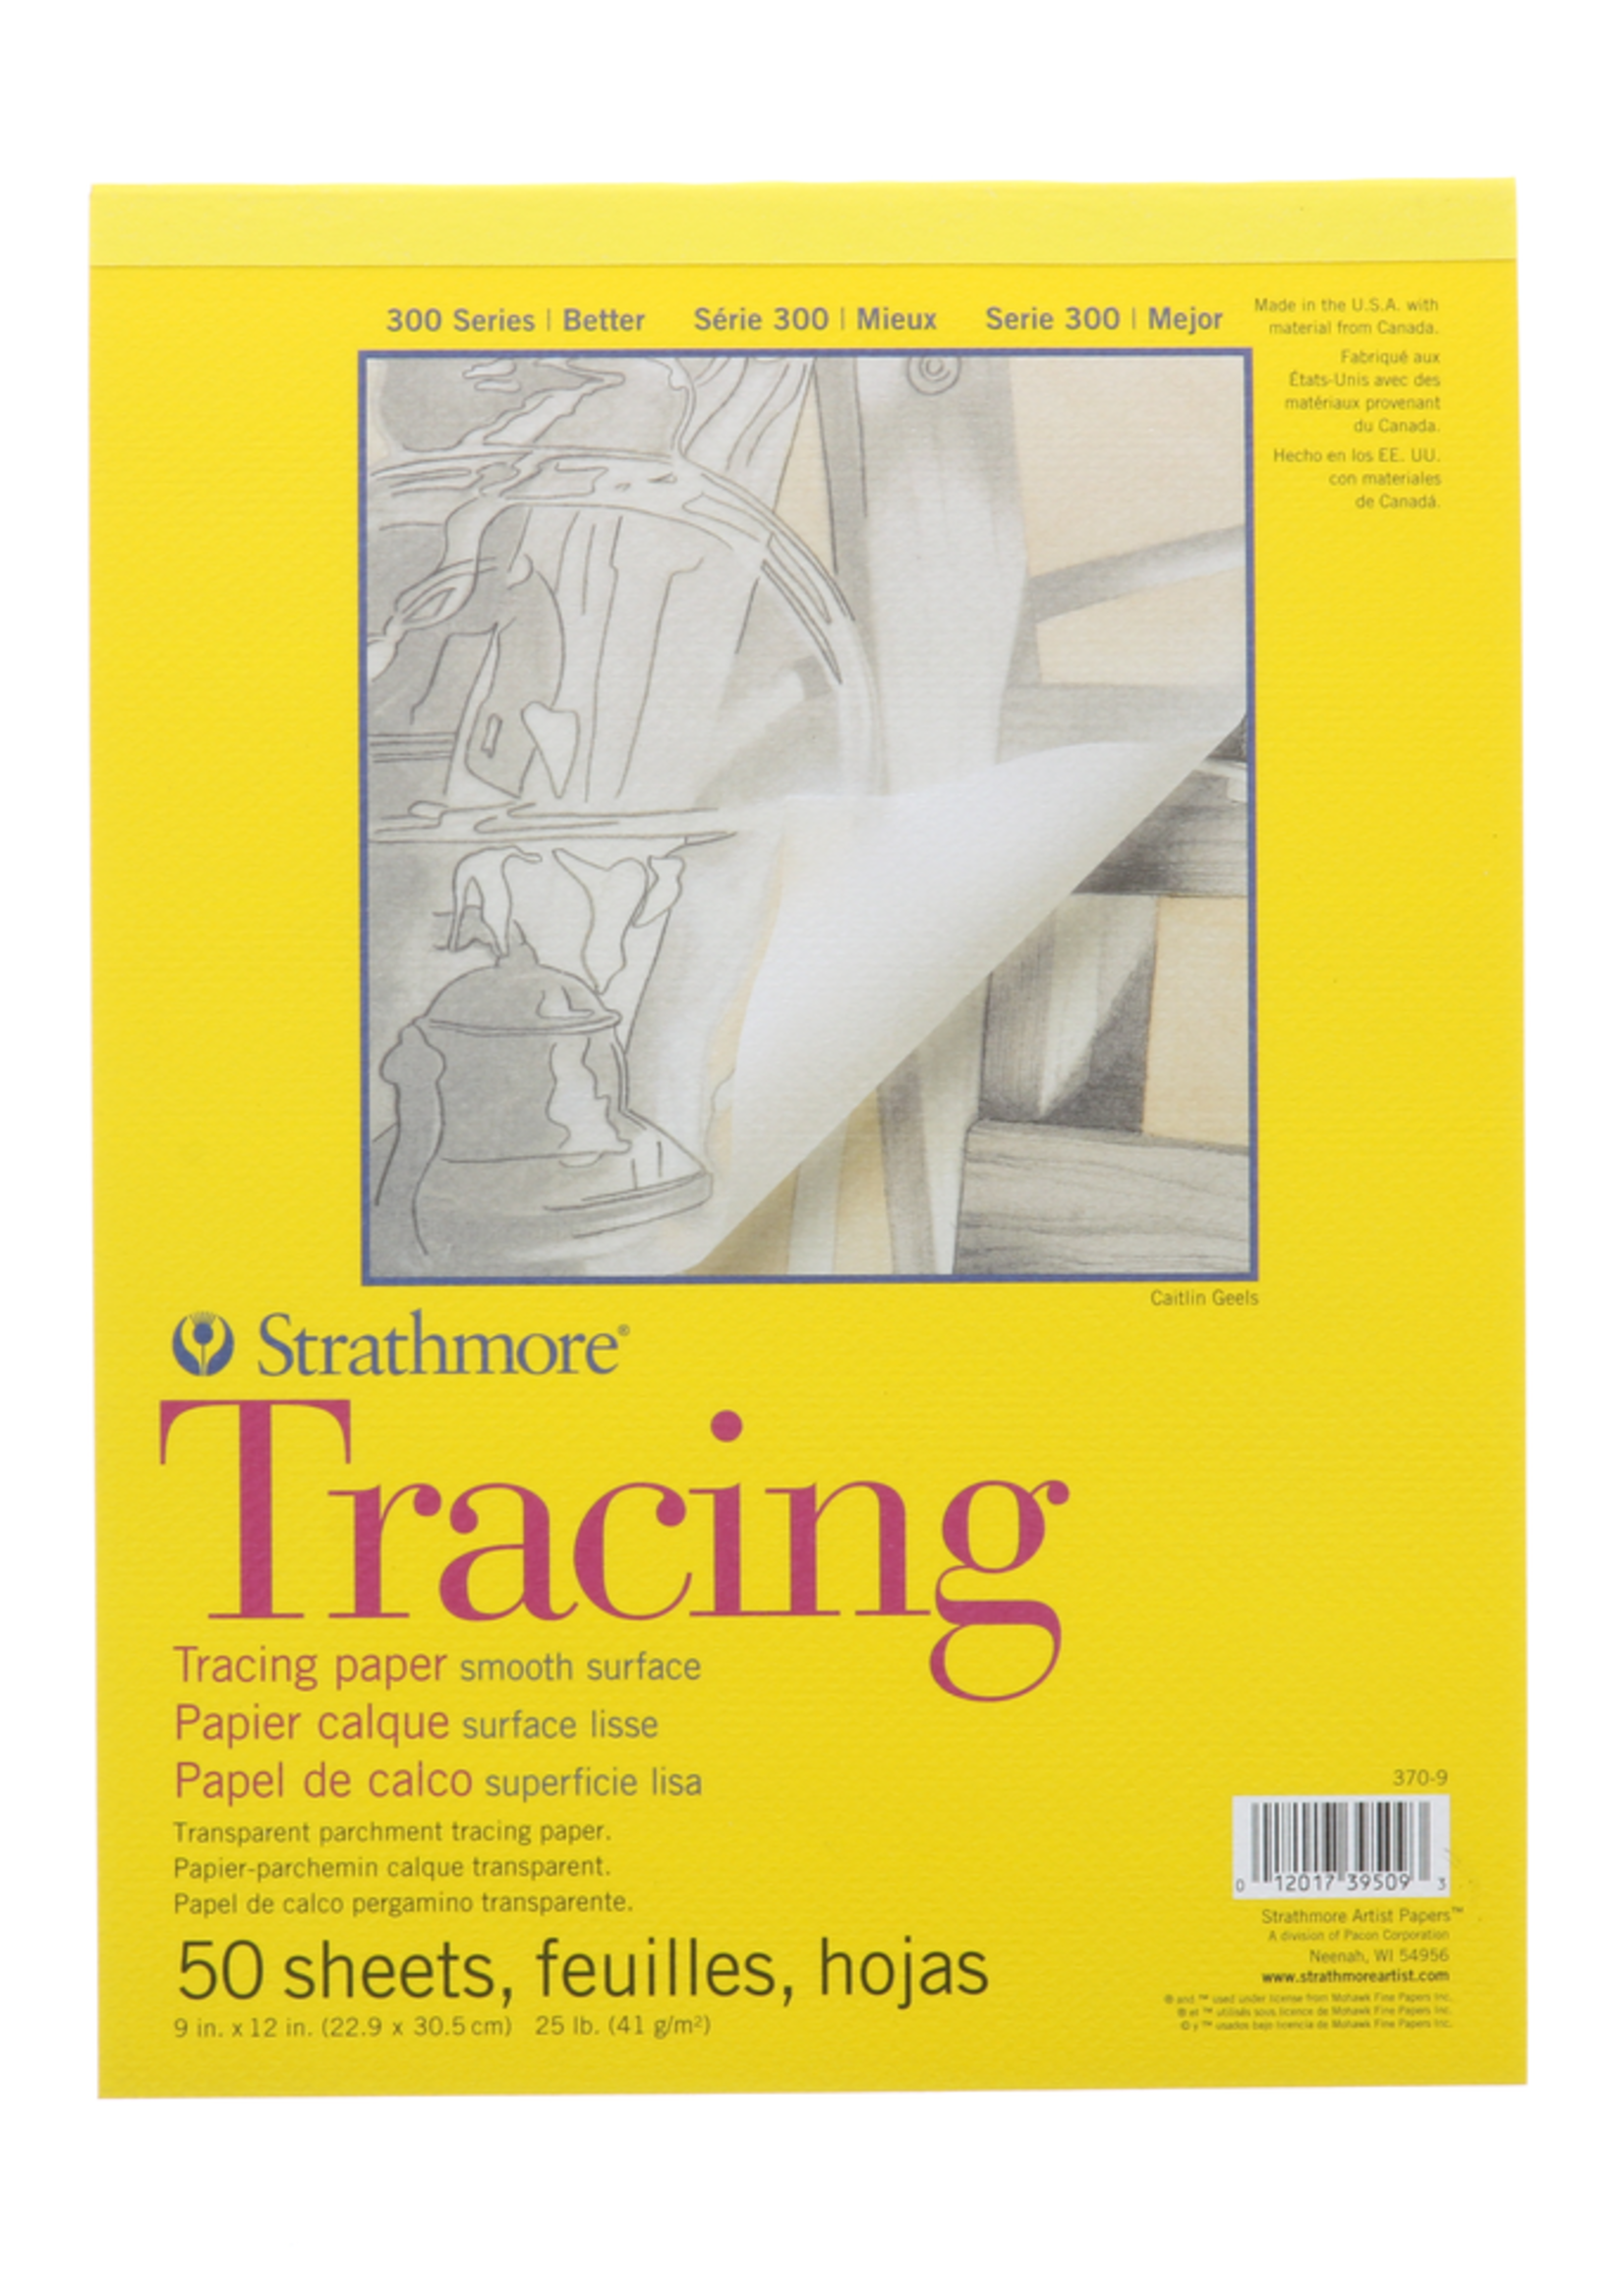 PACON/STRATHMORE TRACING TRANSPARENT PARCHMENT TAPE PAD 25LB 50 SHEETS